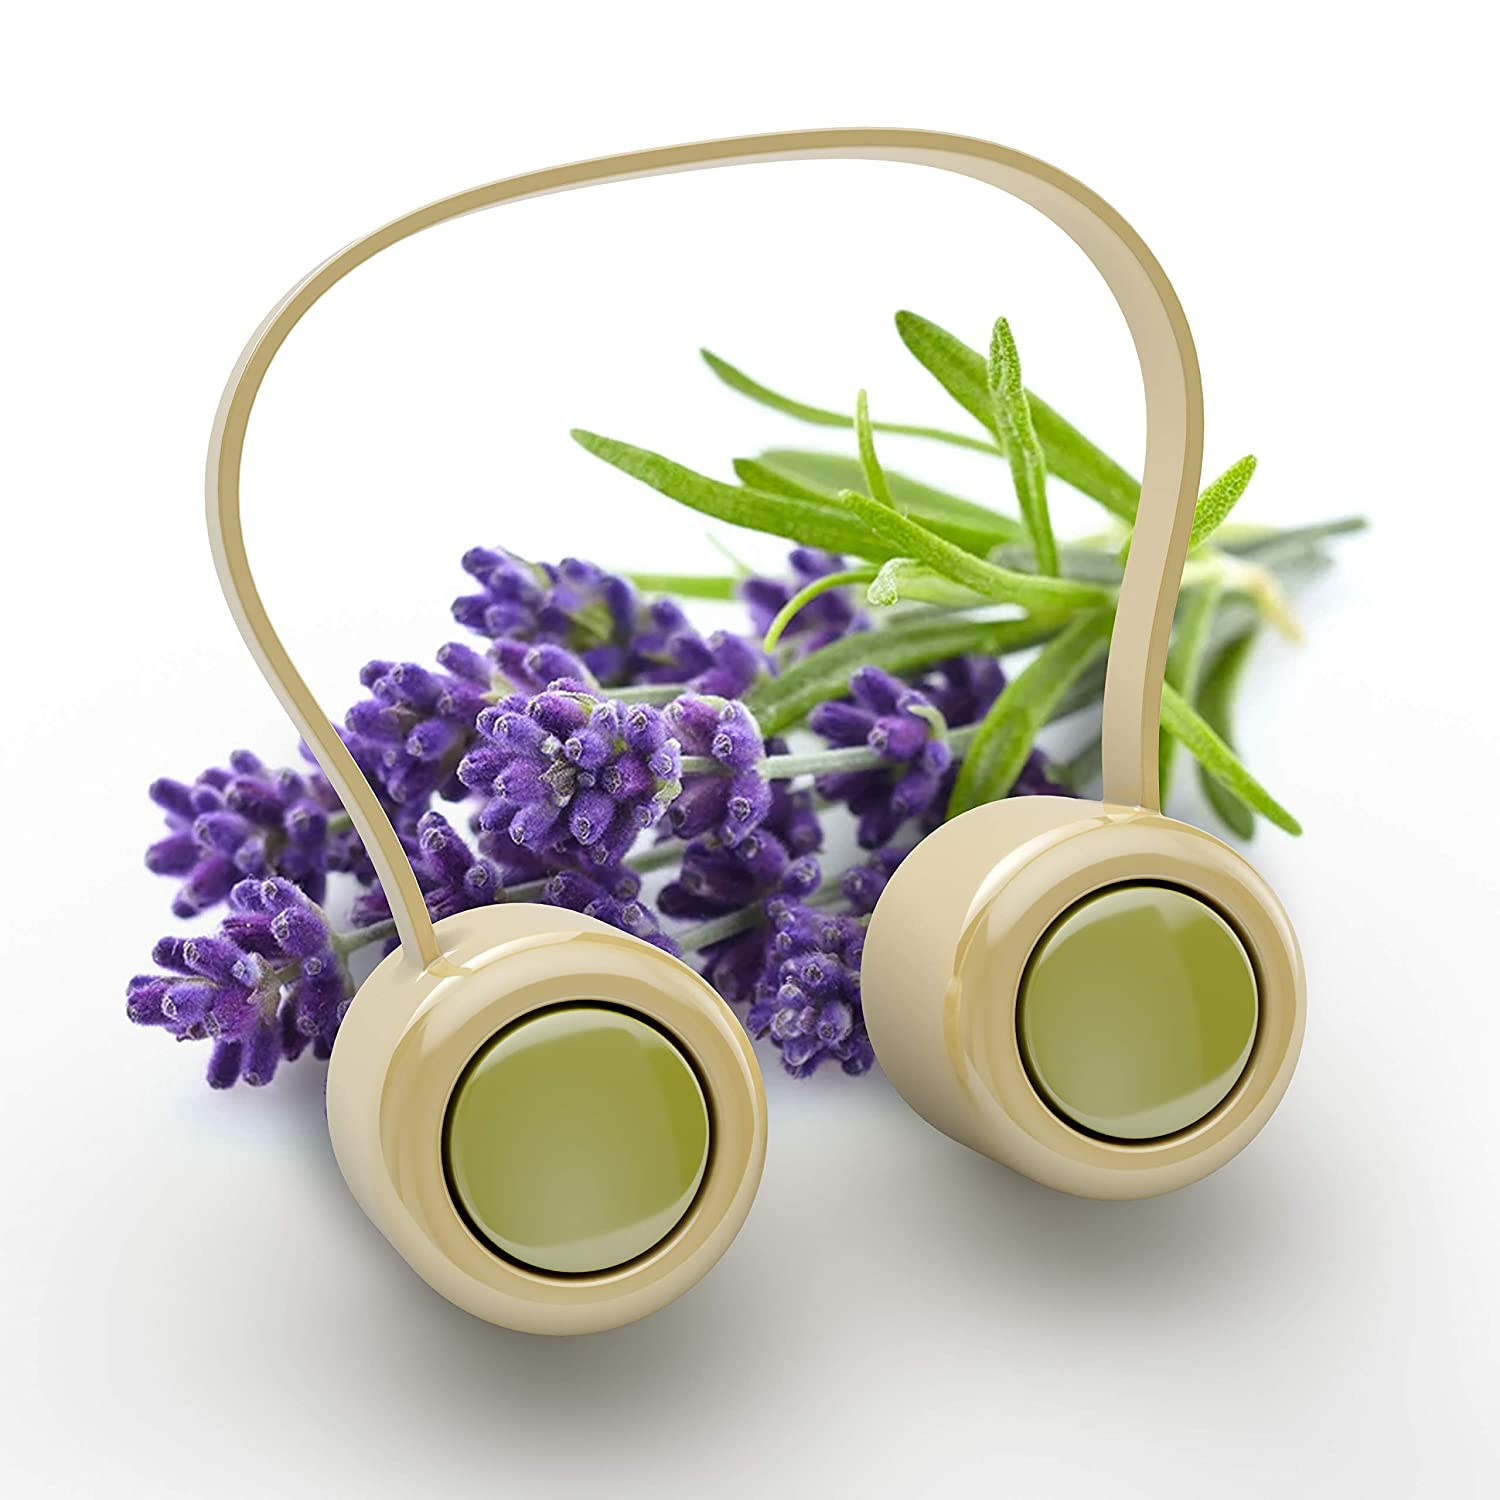 Zence Relax Al sold out. Fresh Lavender Scent Sleep Rel Stress Calming New product type For